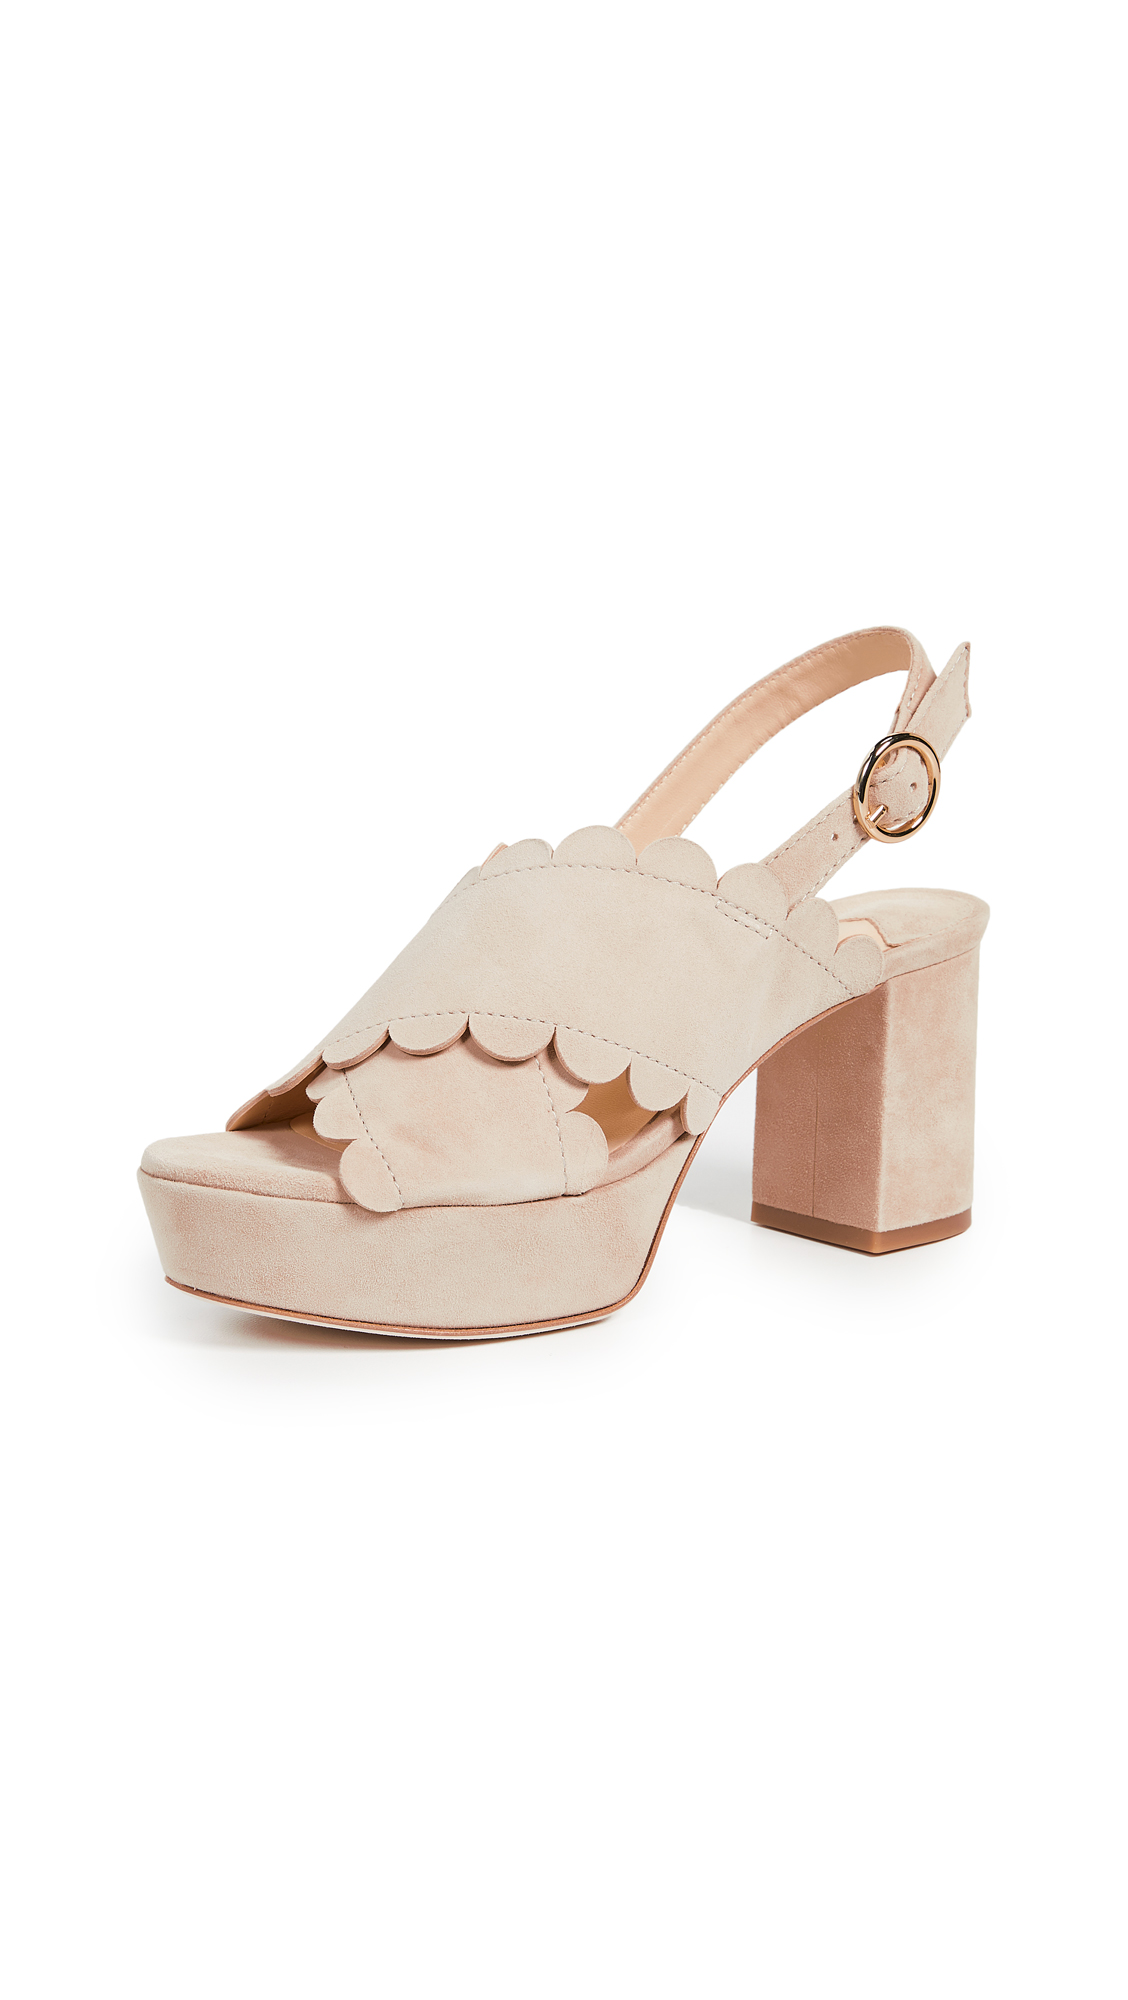 ISA TAPIA Perry Platform Sandals in Summer Sand